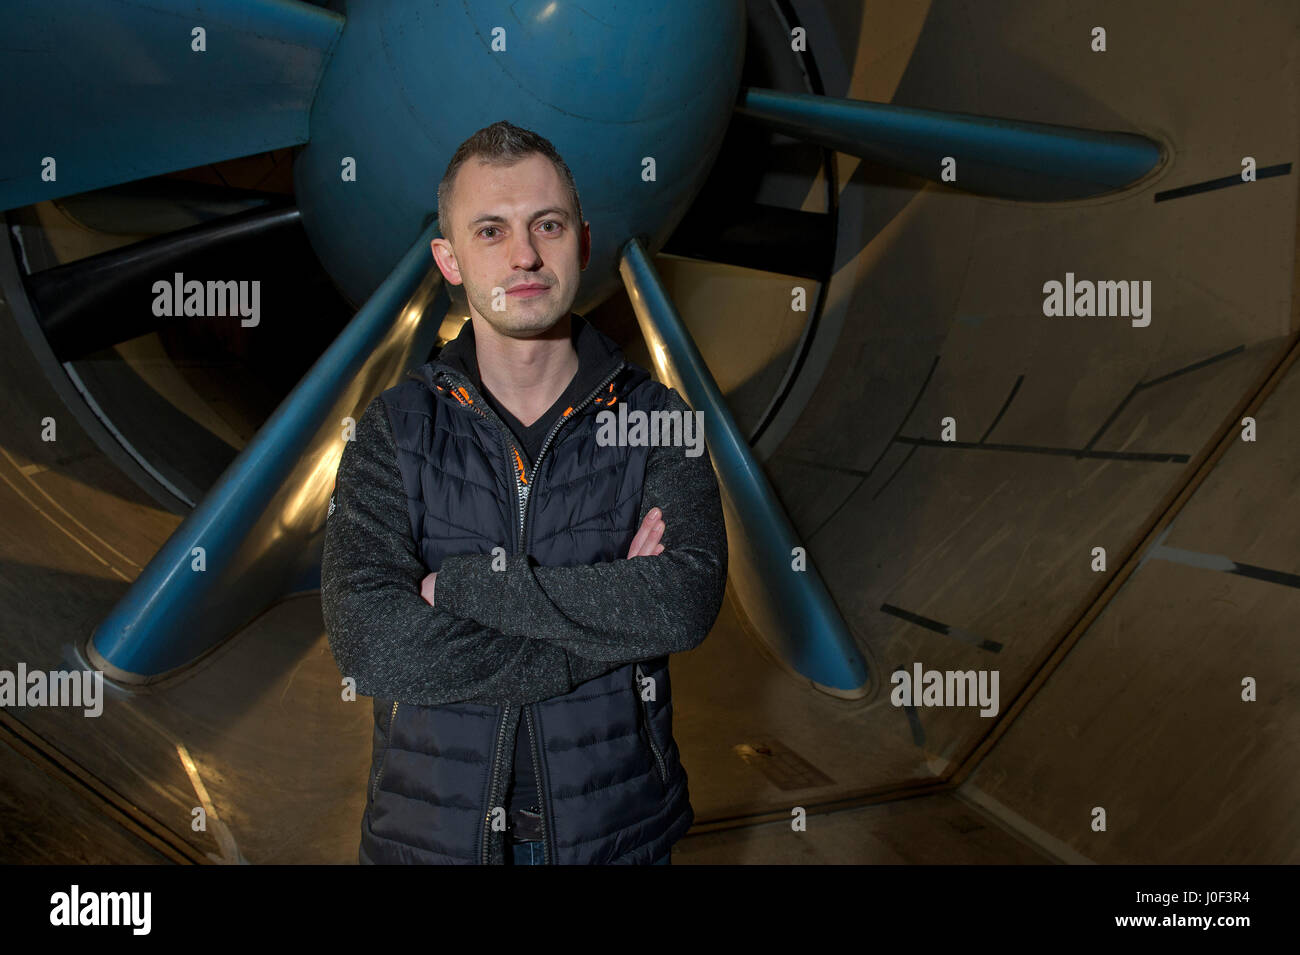 Paul Eremenko, CTO of Airbus Group, at Airbus Group, Filton, Bristol, UK, in the wind tunnel. - Stock Image